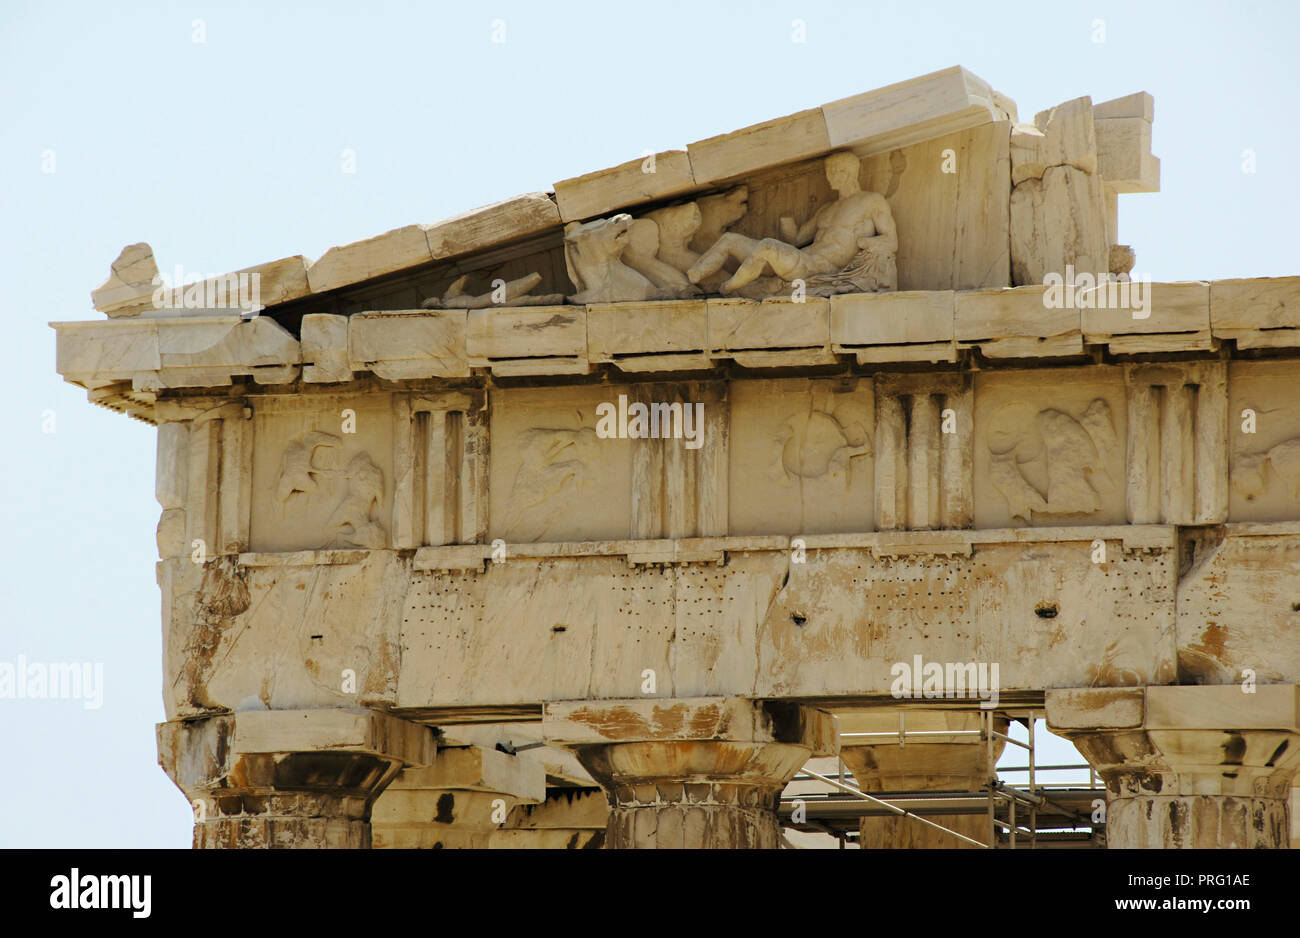 Greece. Athens. Acropolis. Parthenon. The Doric order. Architectural detail. Entablature: cornice (pediment and raking cornice), frieze (trygliphs and metopes), architrave and capitals (Abacus and echinus). 5th century BC. - Stock Image